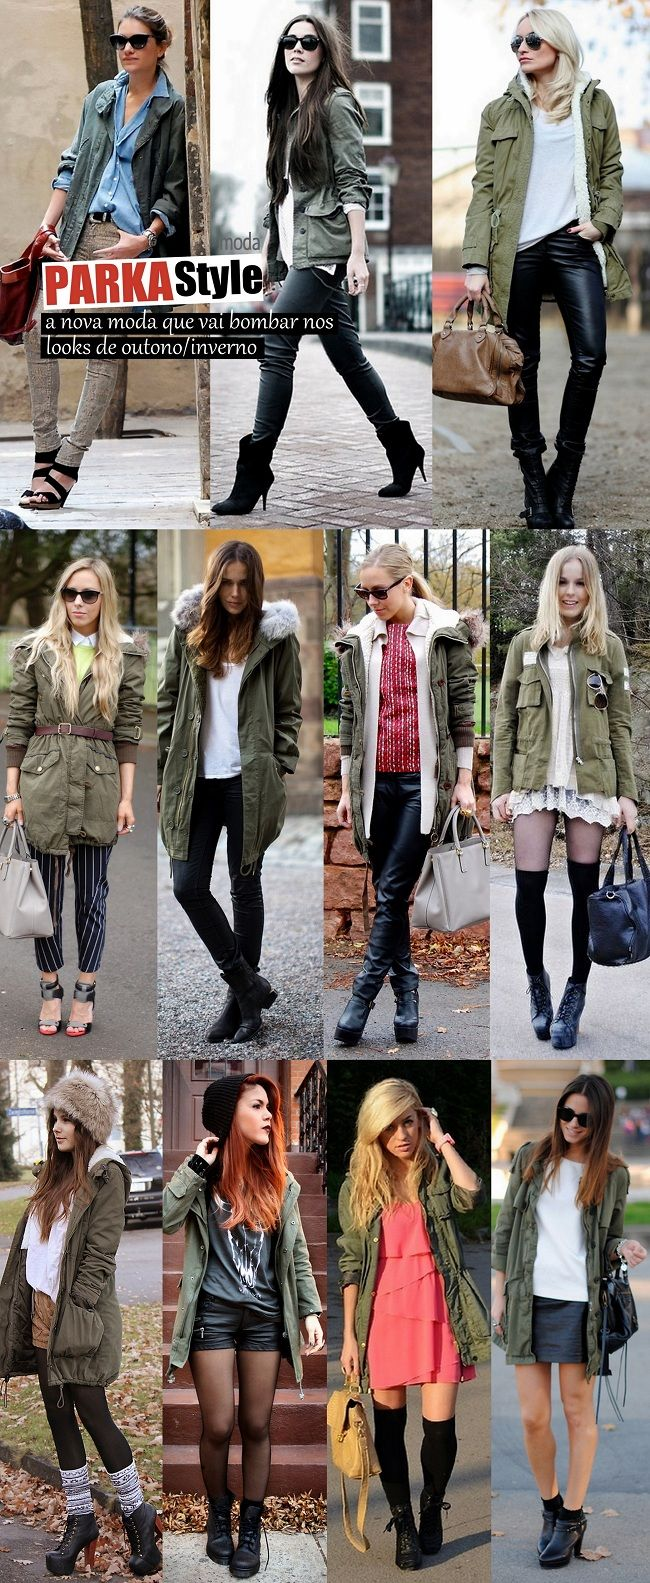 Many ideas on how you can style your parka! Casual - dressed up, autumn winter and spring!?